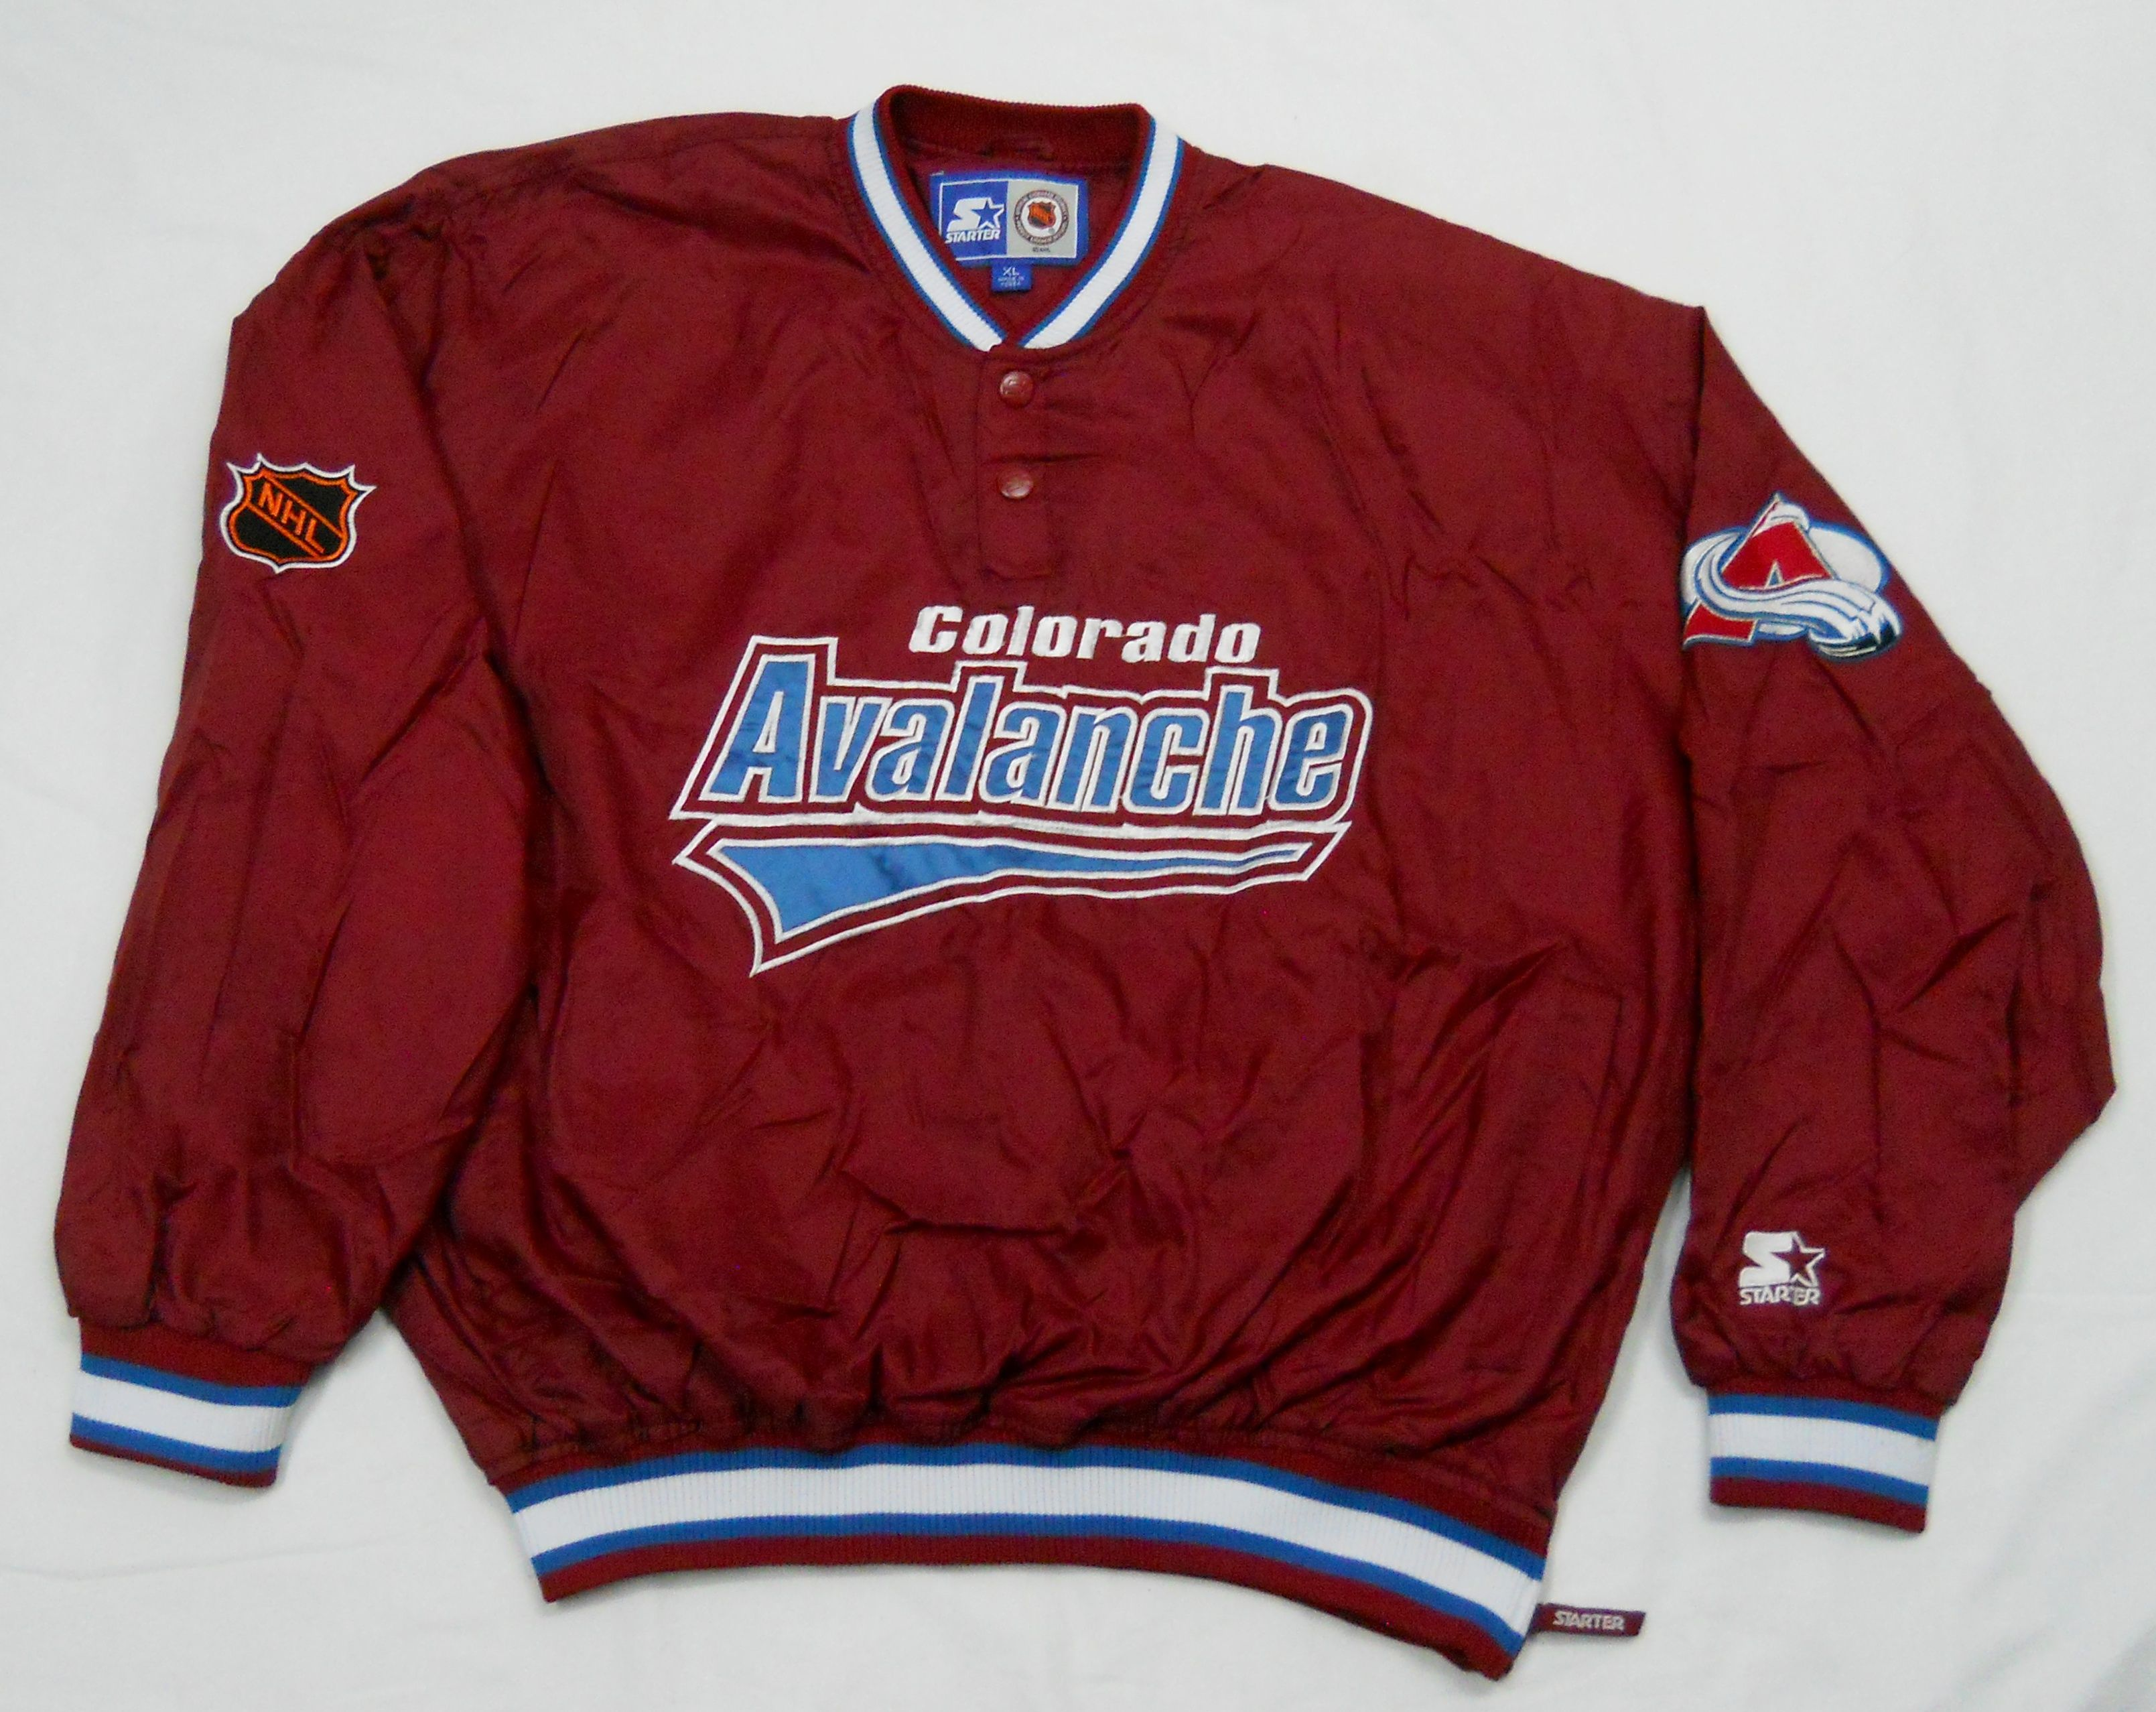 quality design 97066 3491c Vintage mid-90s Colorado Avalanche pullover jacket by ...